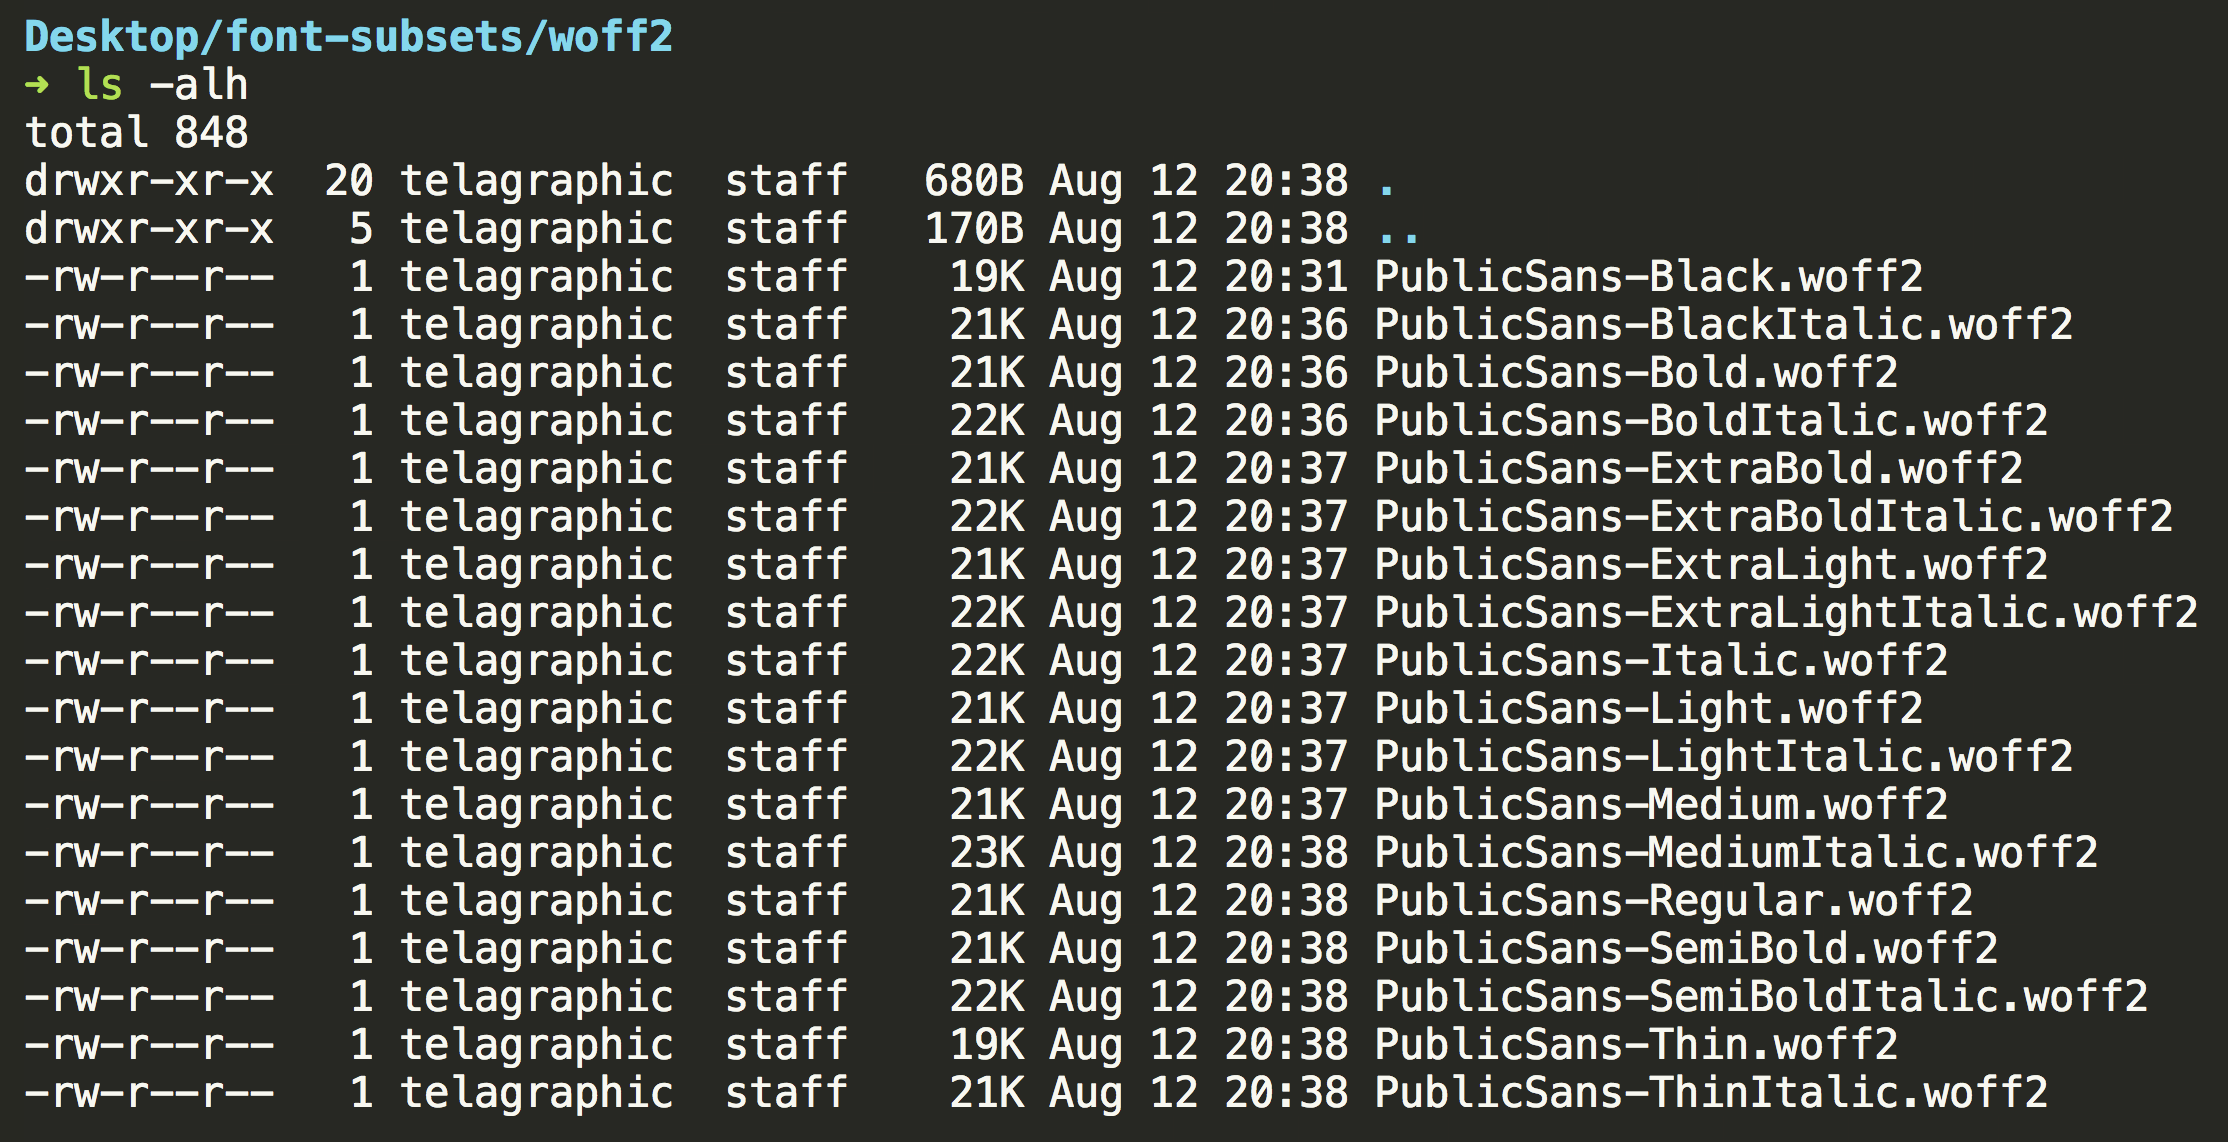 File Sizes After Subsetting